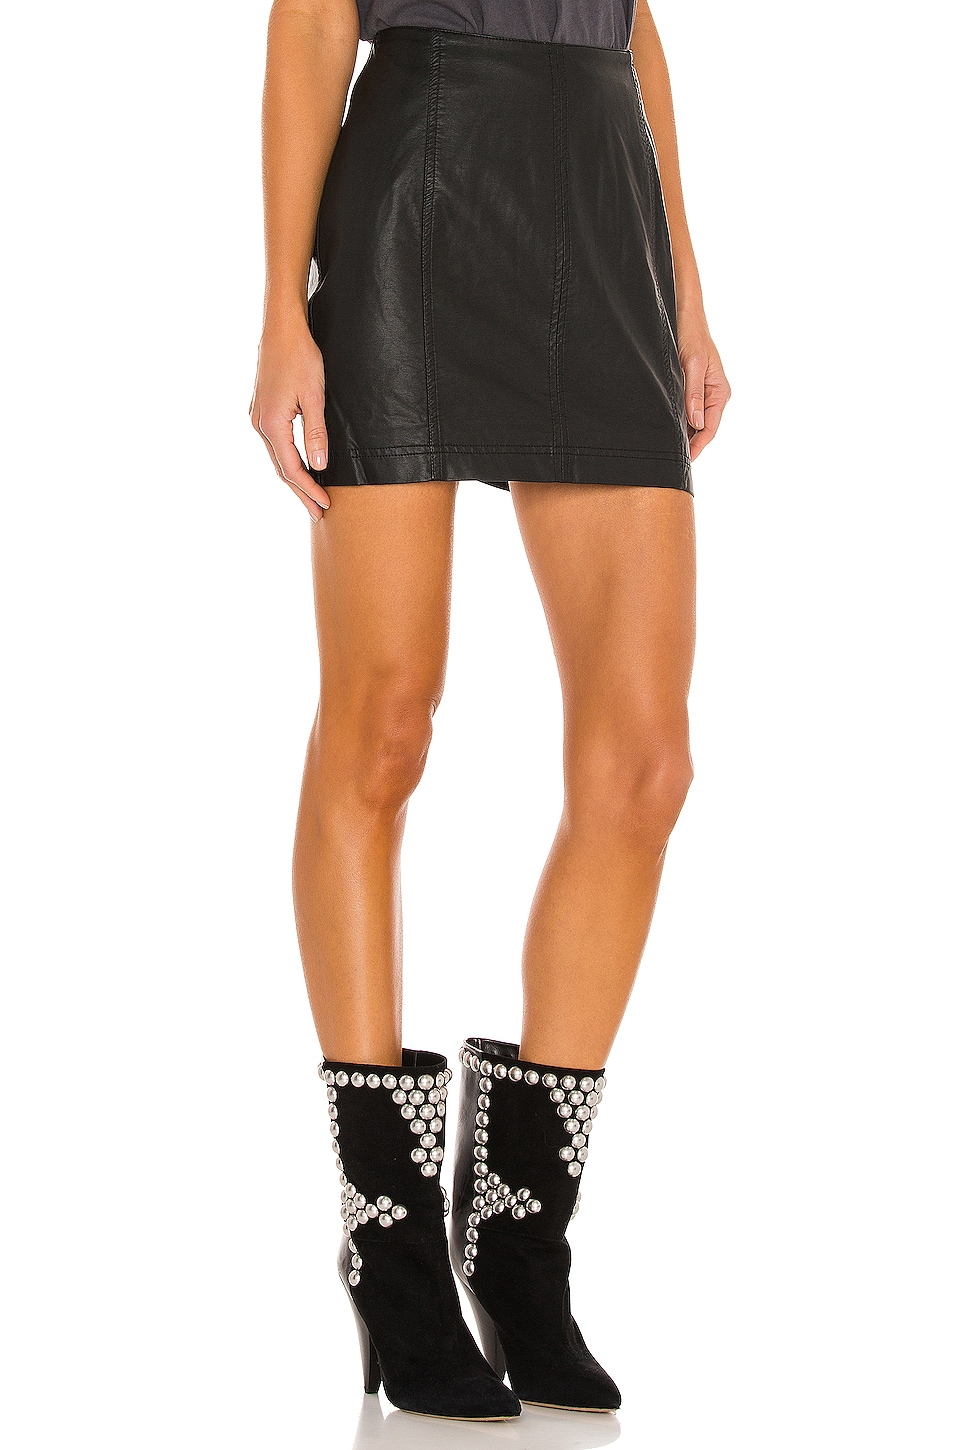 Modern Femme Vegan Mini Skirt, view 2, click to view large image.